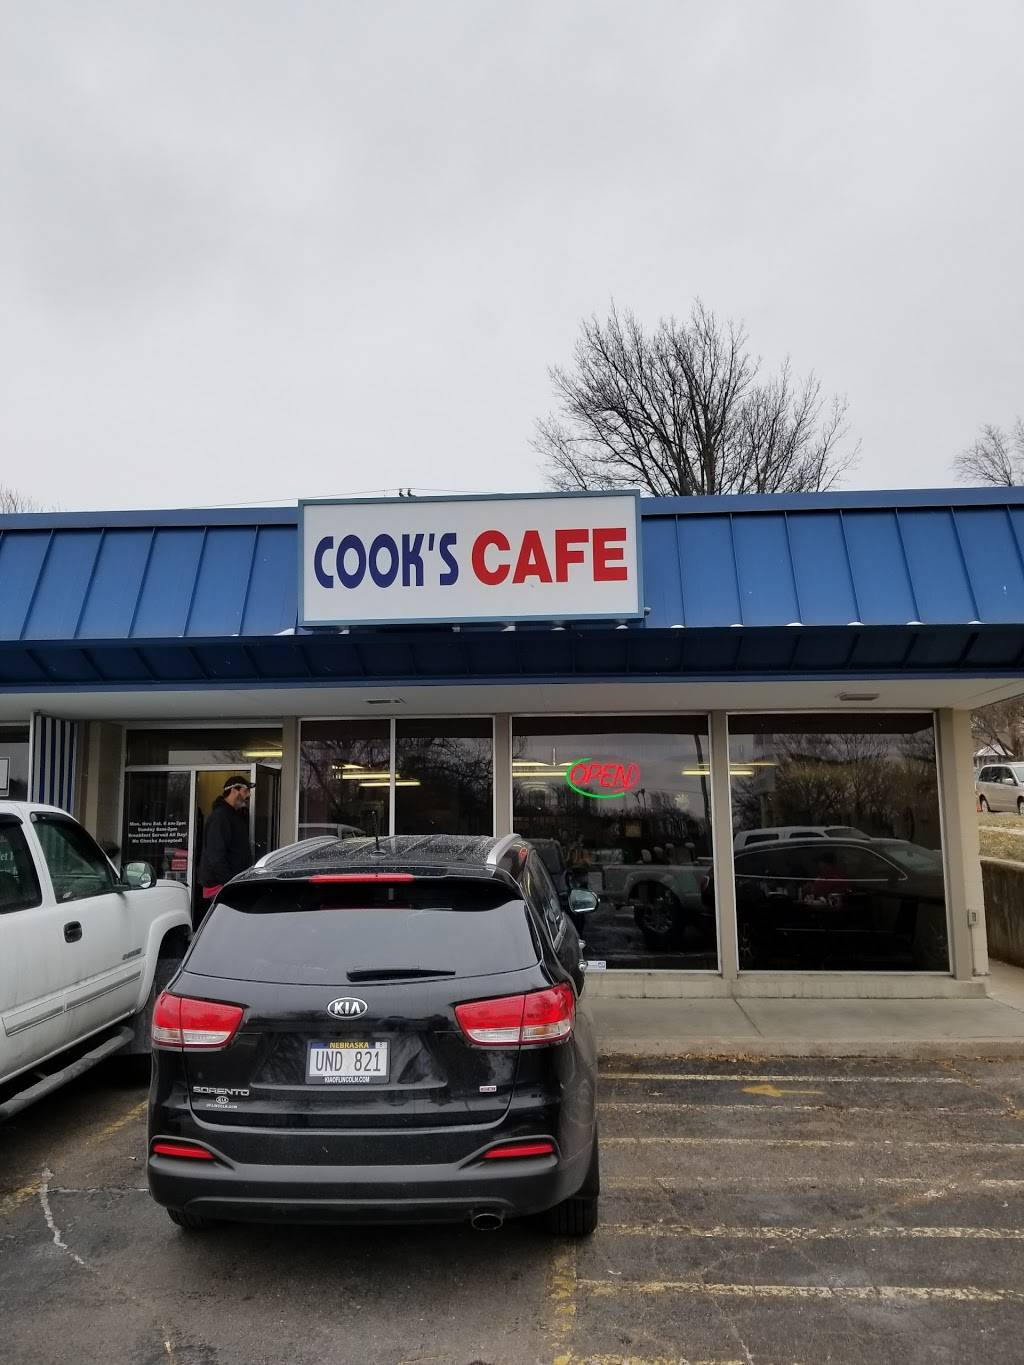 Cooks Cafe - cafe  | Photo 6 of 9 | Address: 1300 N 66th St, Lincoln, NE 68505, USA | Phone: (402) 466-1771